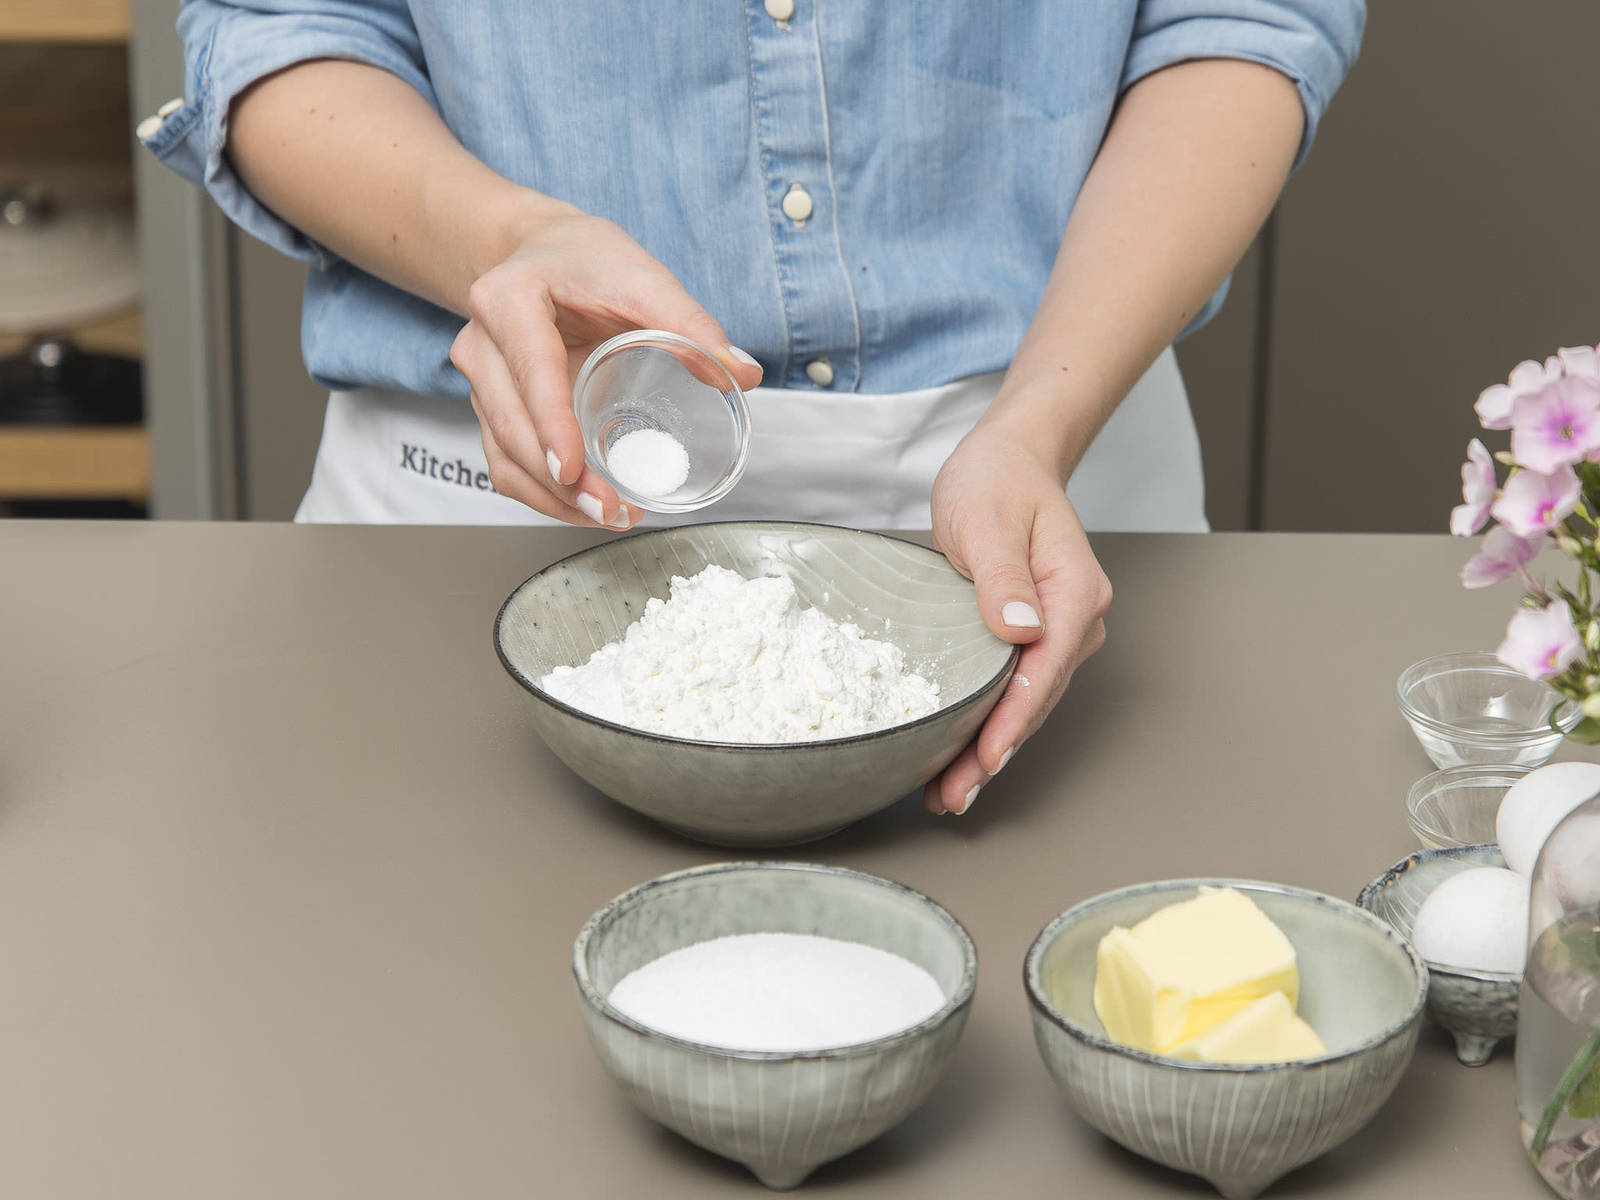 Preheat oven to 175°C/350°F. Line cupcake tins with liners. Combine flour, starch, baking powder, and some of the salt in a bowl and set aside.